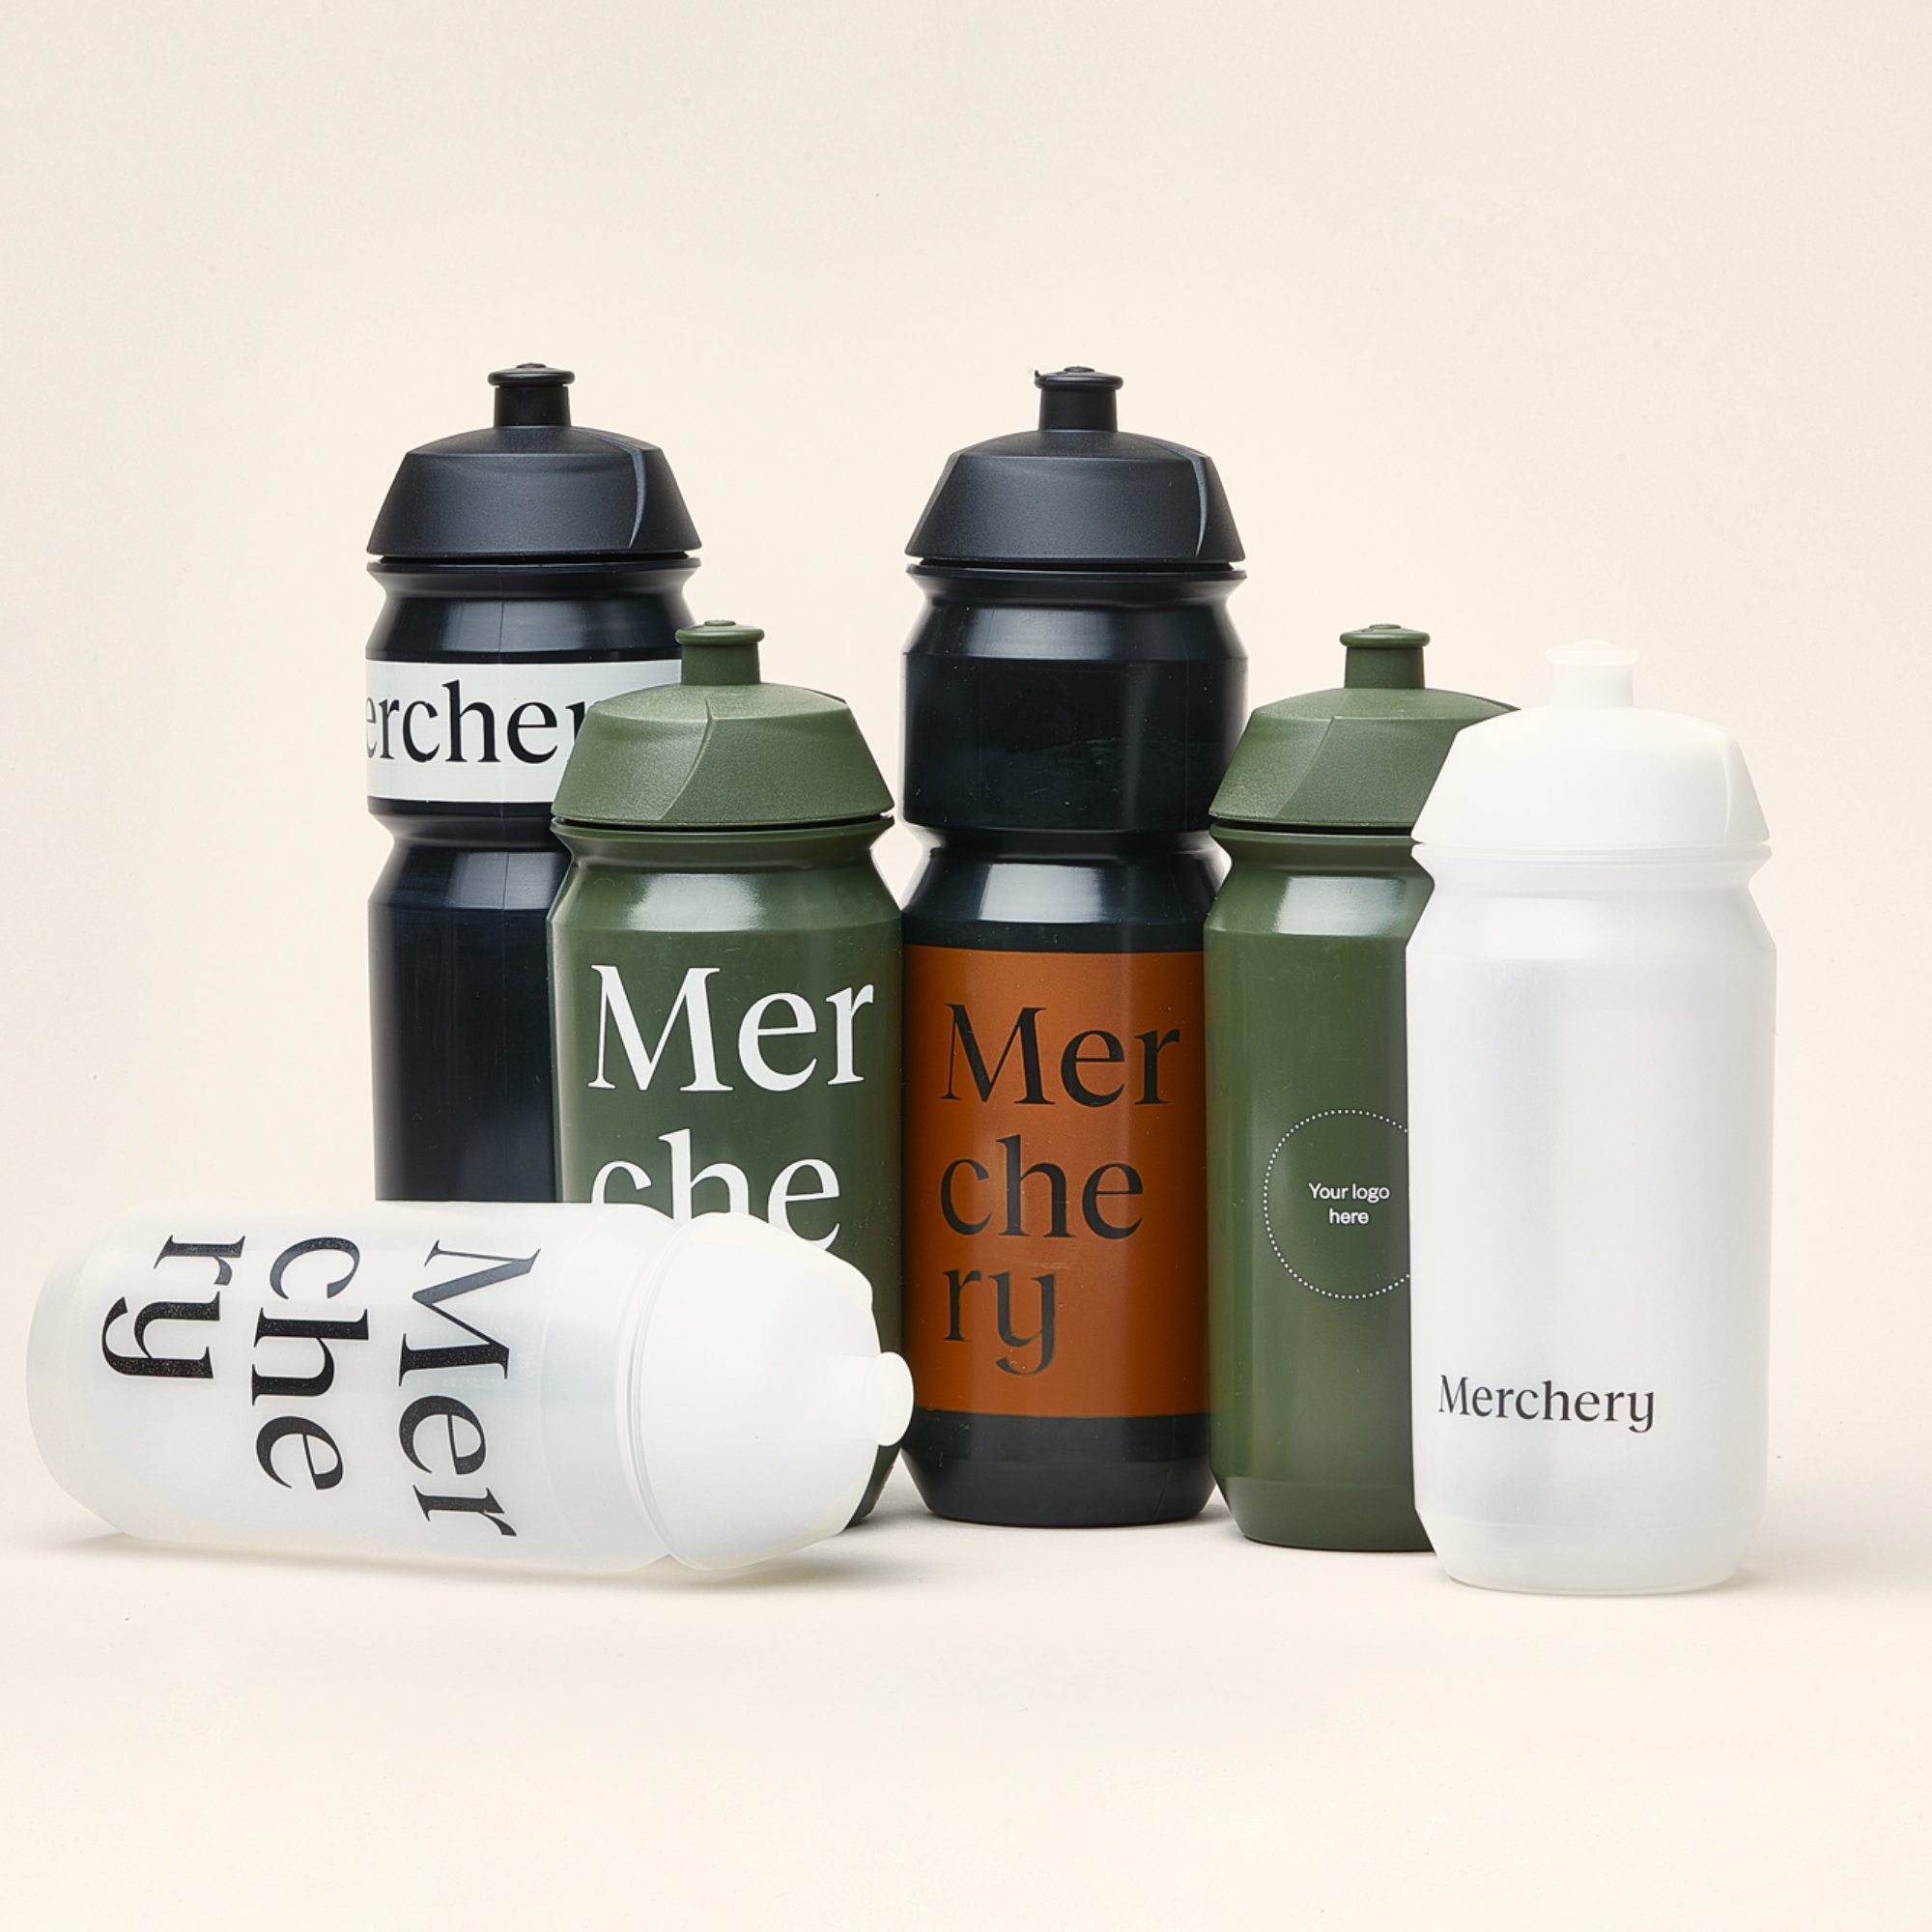 Merchery customized cycling bio bottle black white green all sizes eco friendly sustainable branded bottle